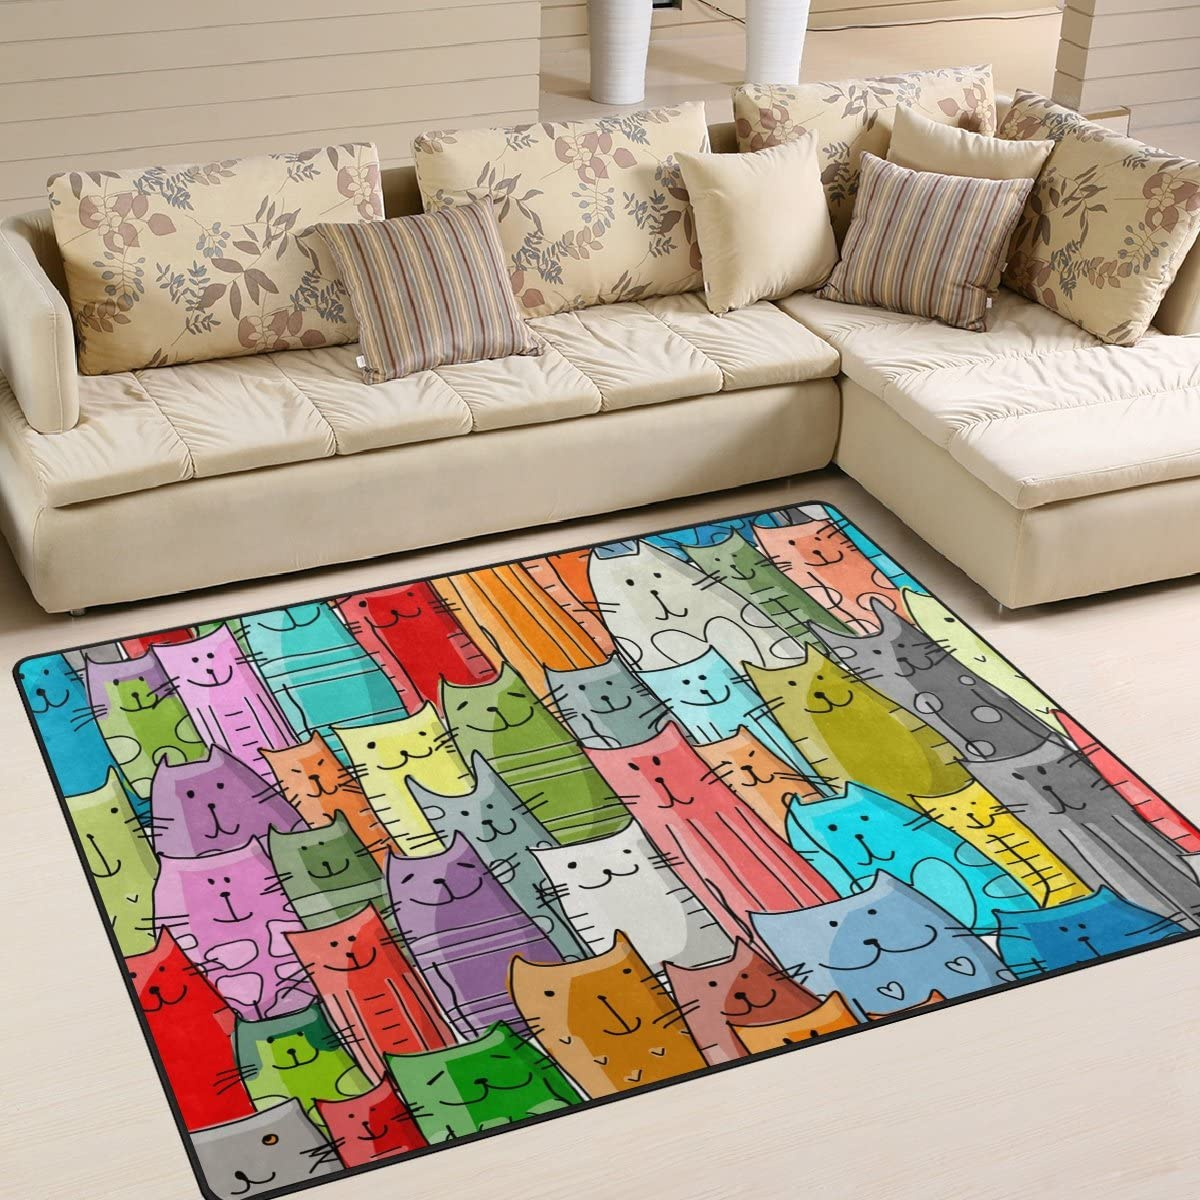 Naanle Colorful Animal Area Rug 5'x7', Funny Cats Family Pattern Polyester Area Rug Mat for Living Dining Dorm Room Bedroom Home Decorative